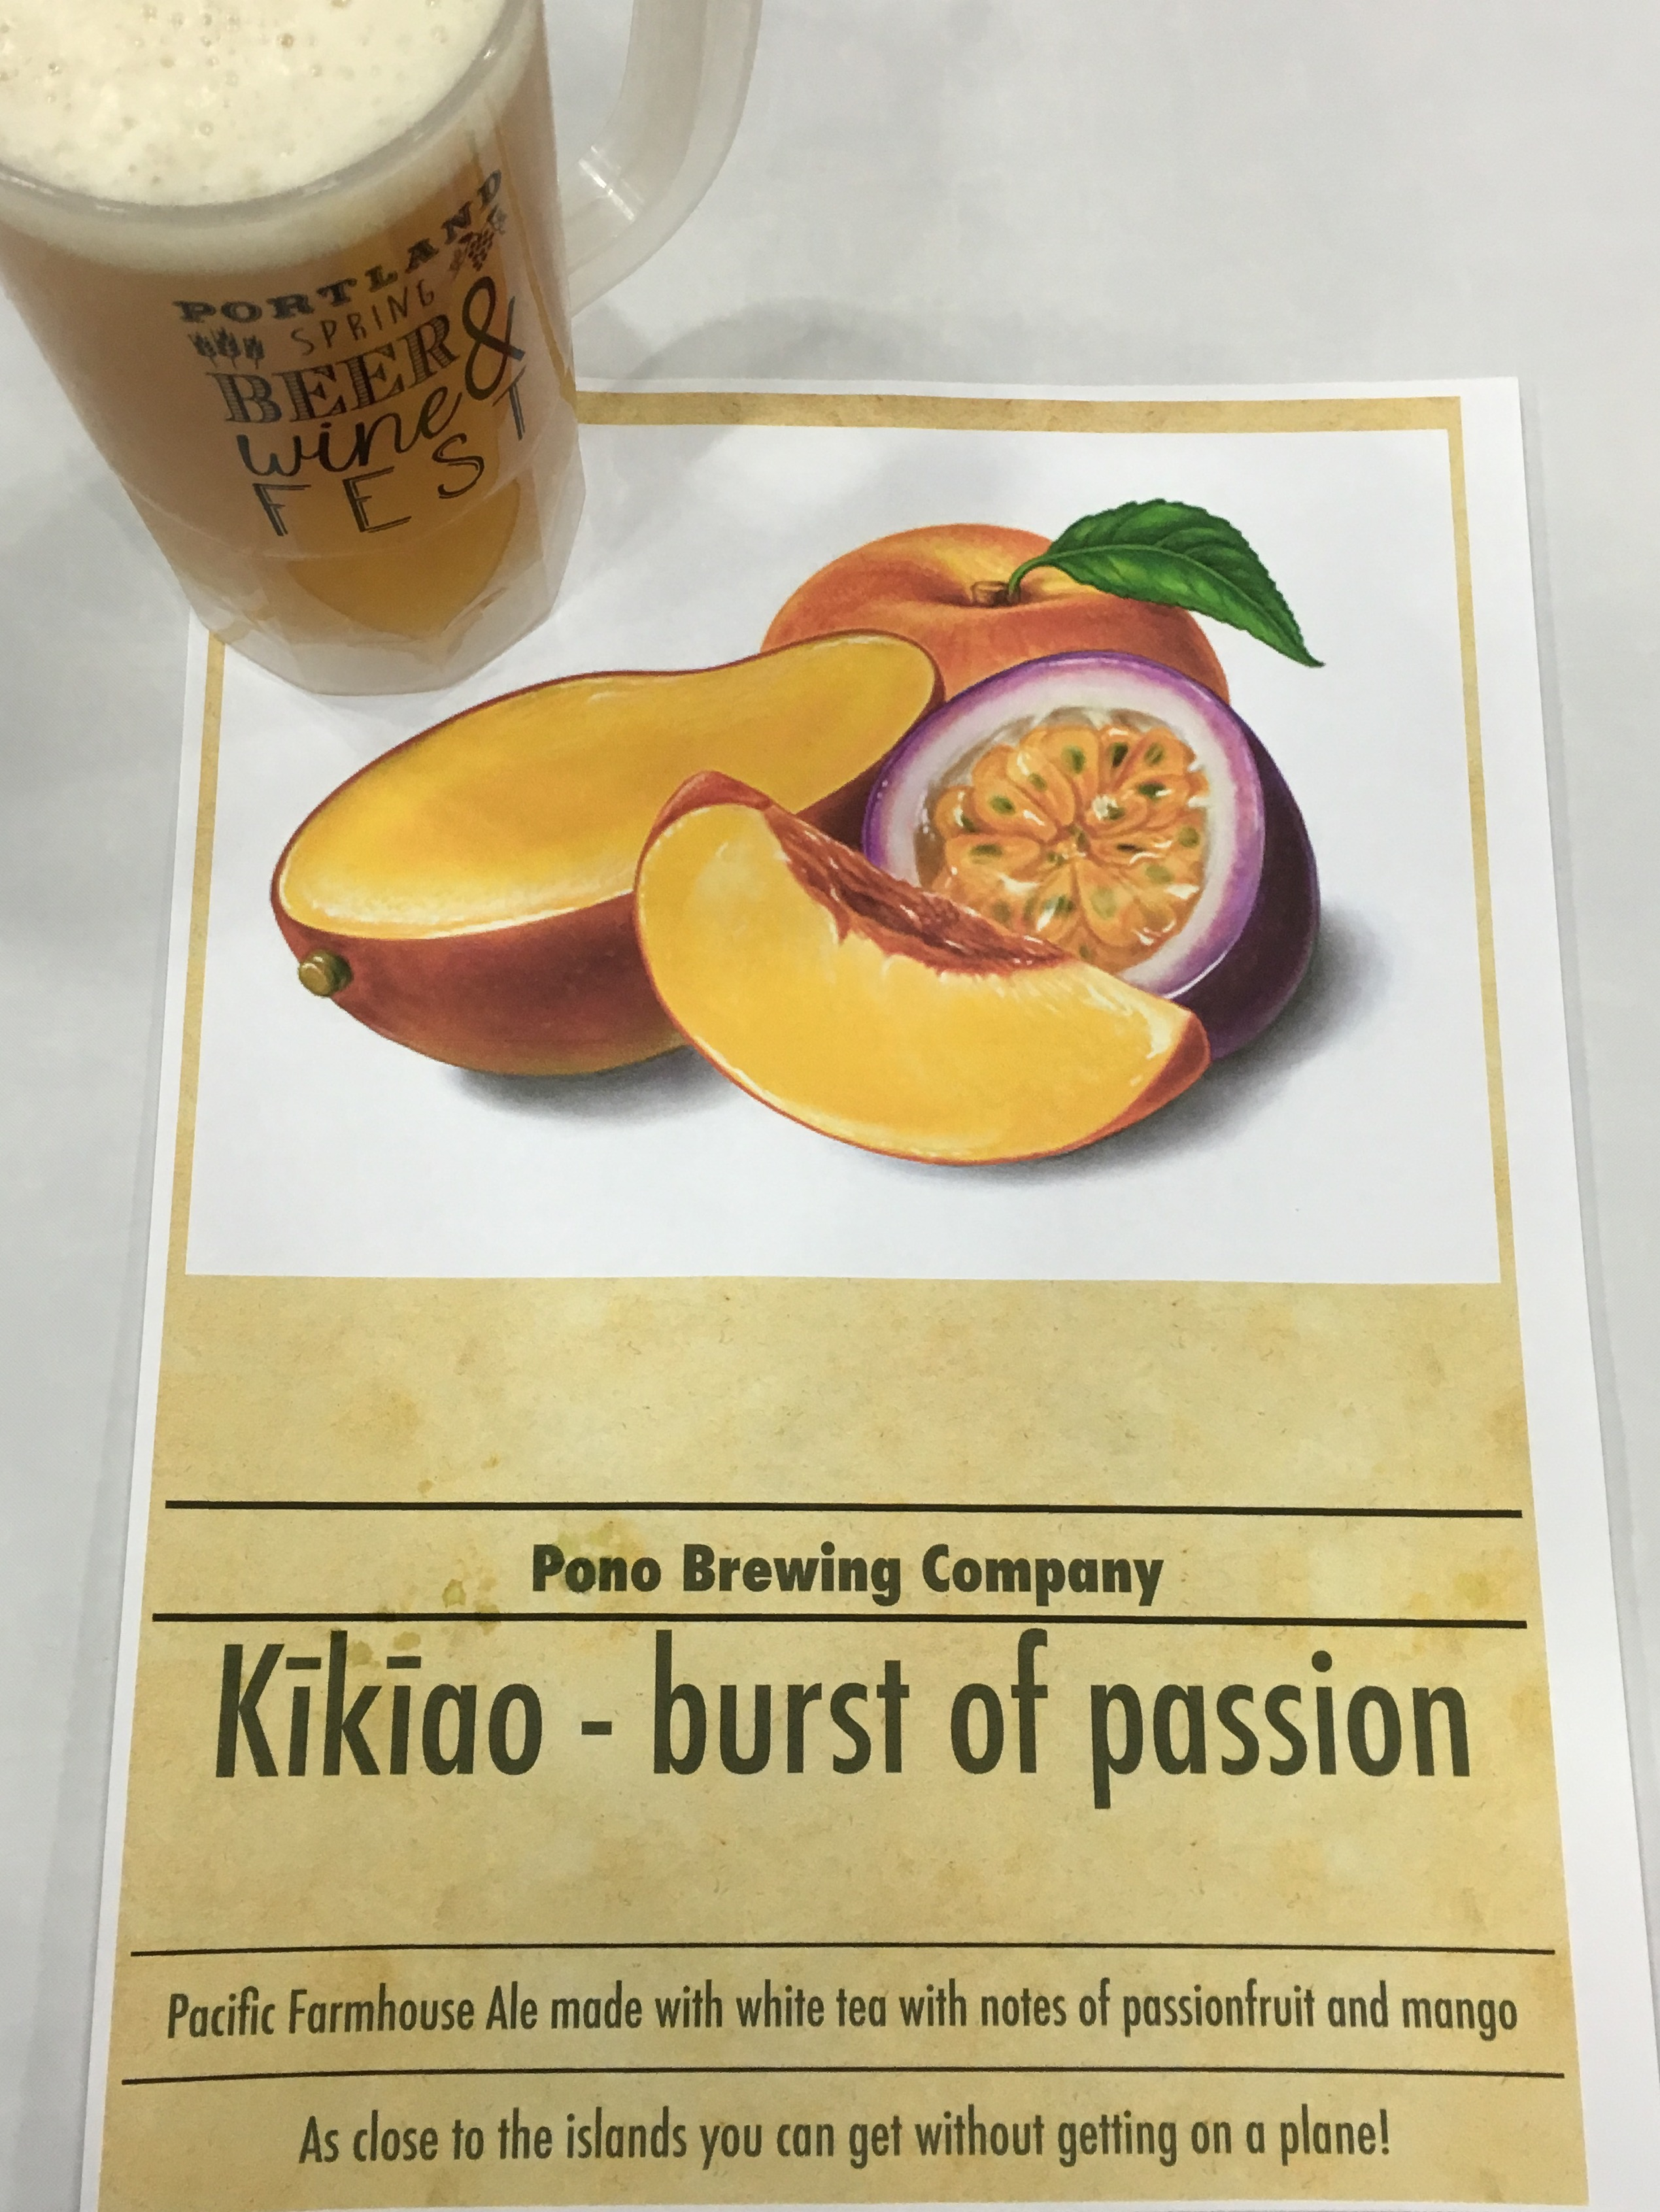 Kikiao Burst of Passion from Pono Brewing at the 2016 Spring Beer and Wine Fest.